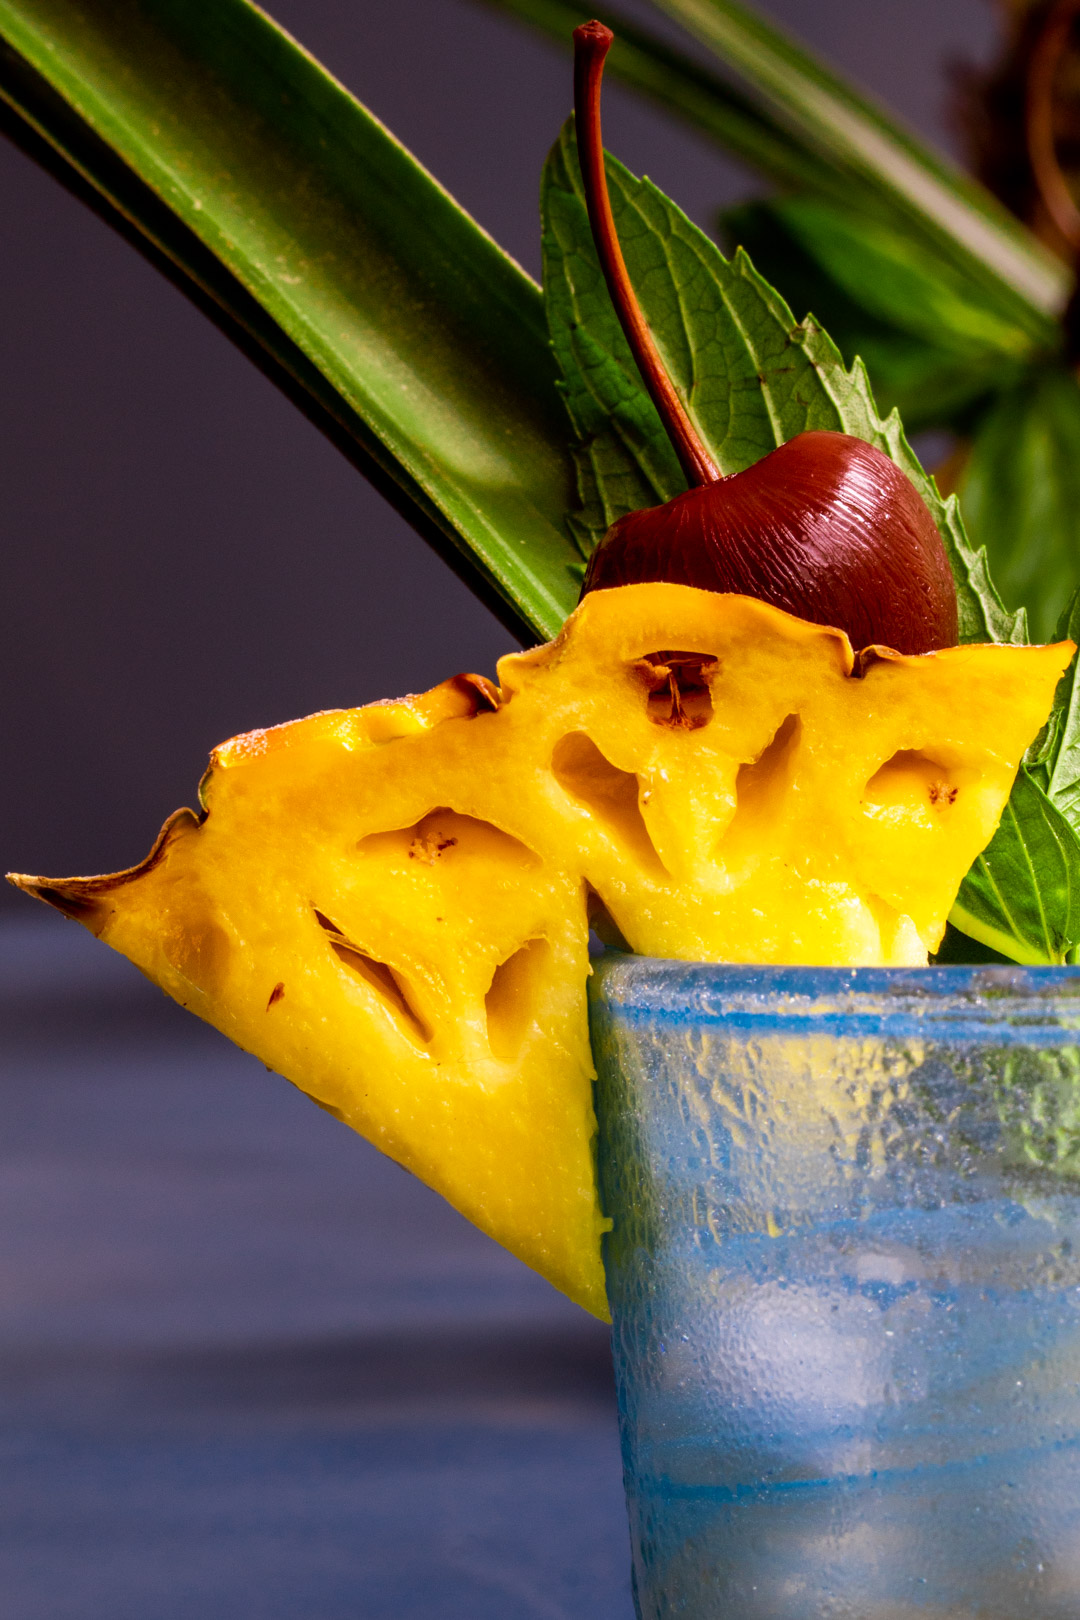 Pickle Mai Tai cocktail close up of pineapple garnish